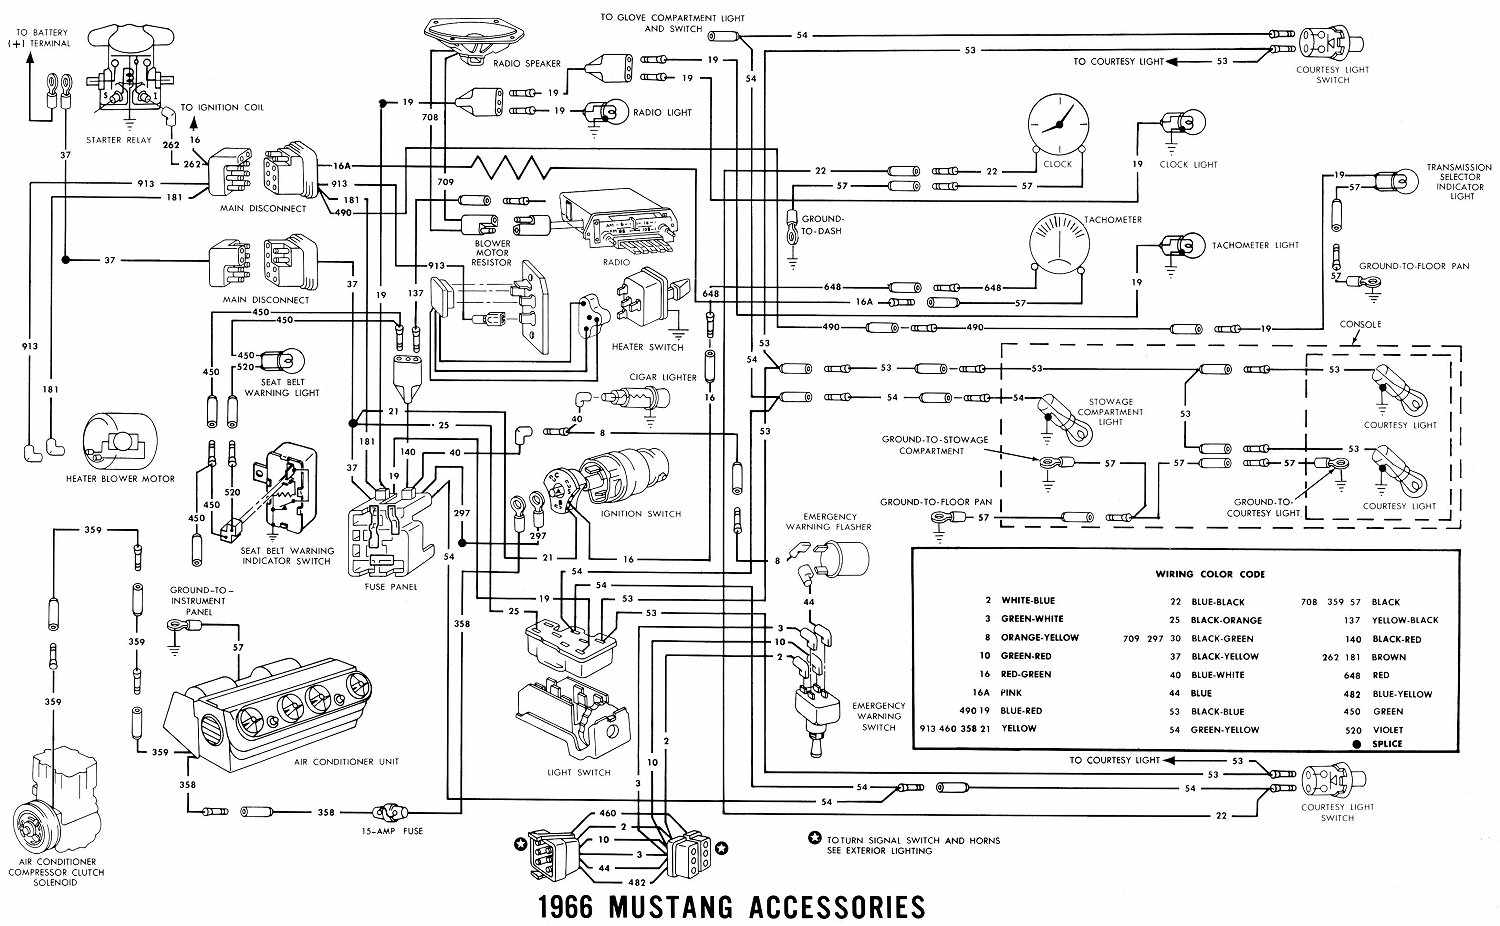 accessories wiring diagram simple wiring diagram rh david huggett co uk 1966  Mustang Body Wiring Harness